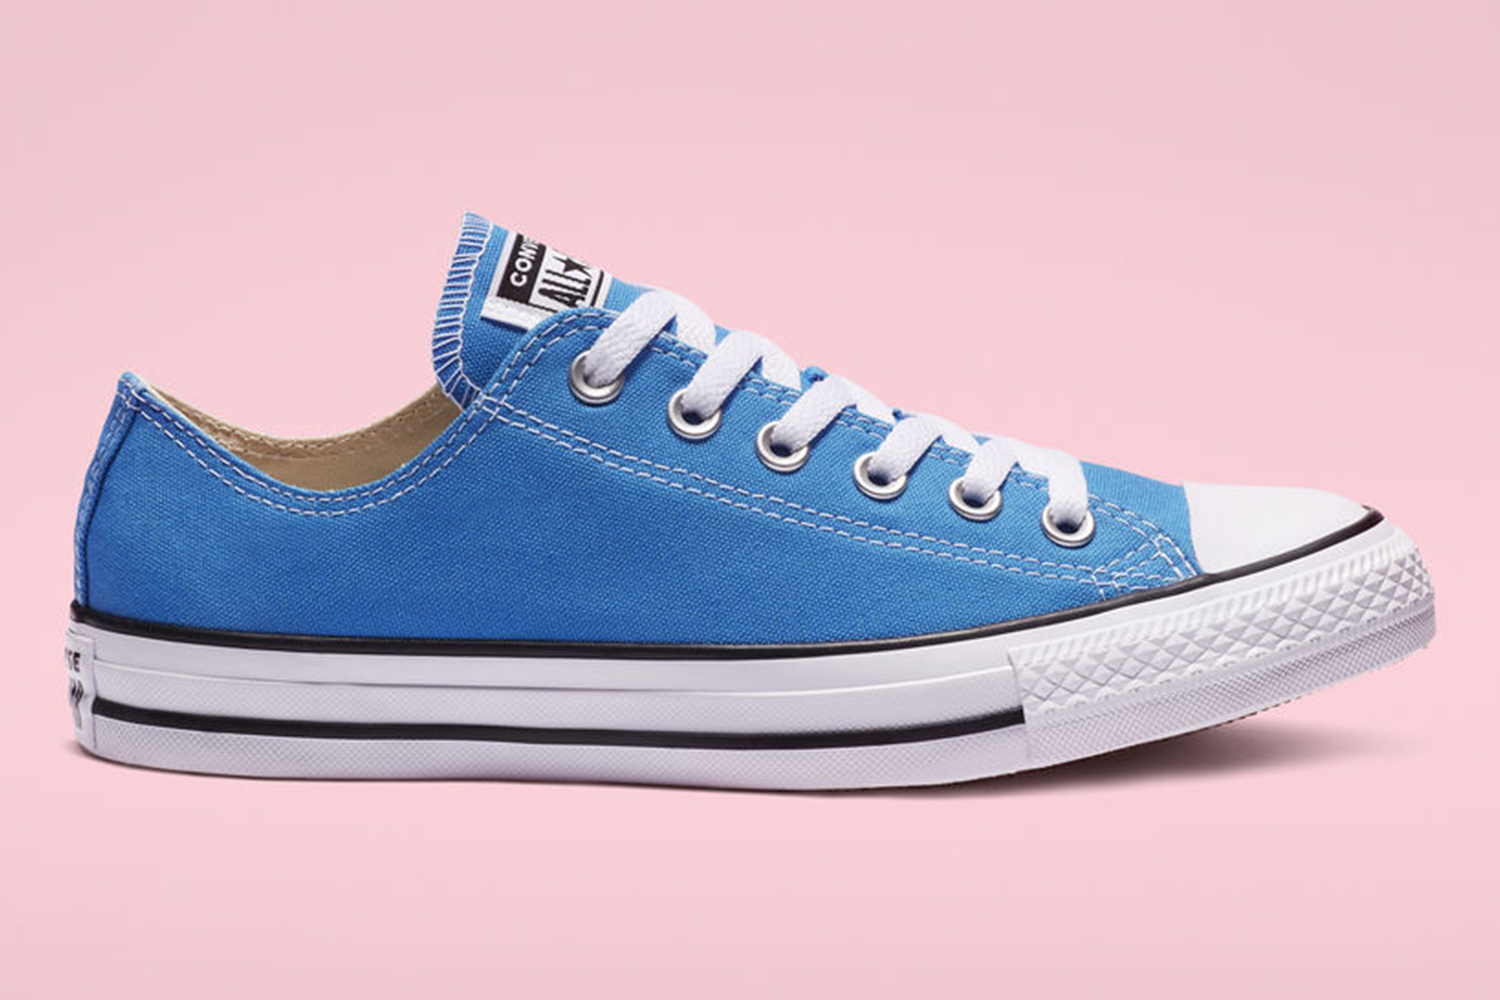 70479ae2d278c9 Converse Cut Prices on Over a Hundred Sneakers to Just  25 - InsideHook